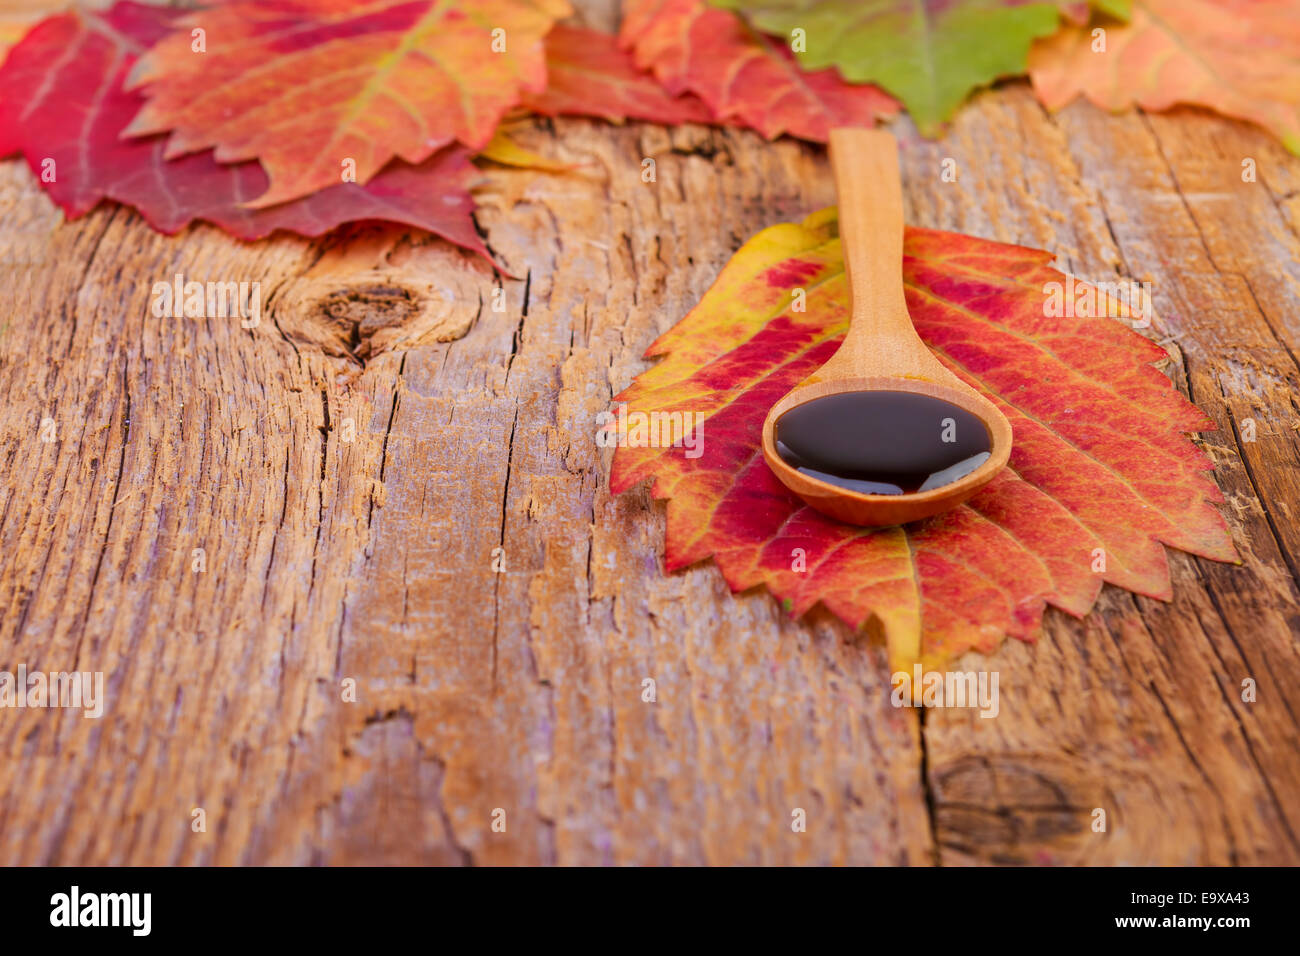 leaf and syrup in wooden spoon on wooden background - Stock Image